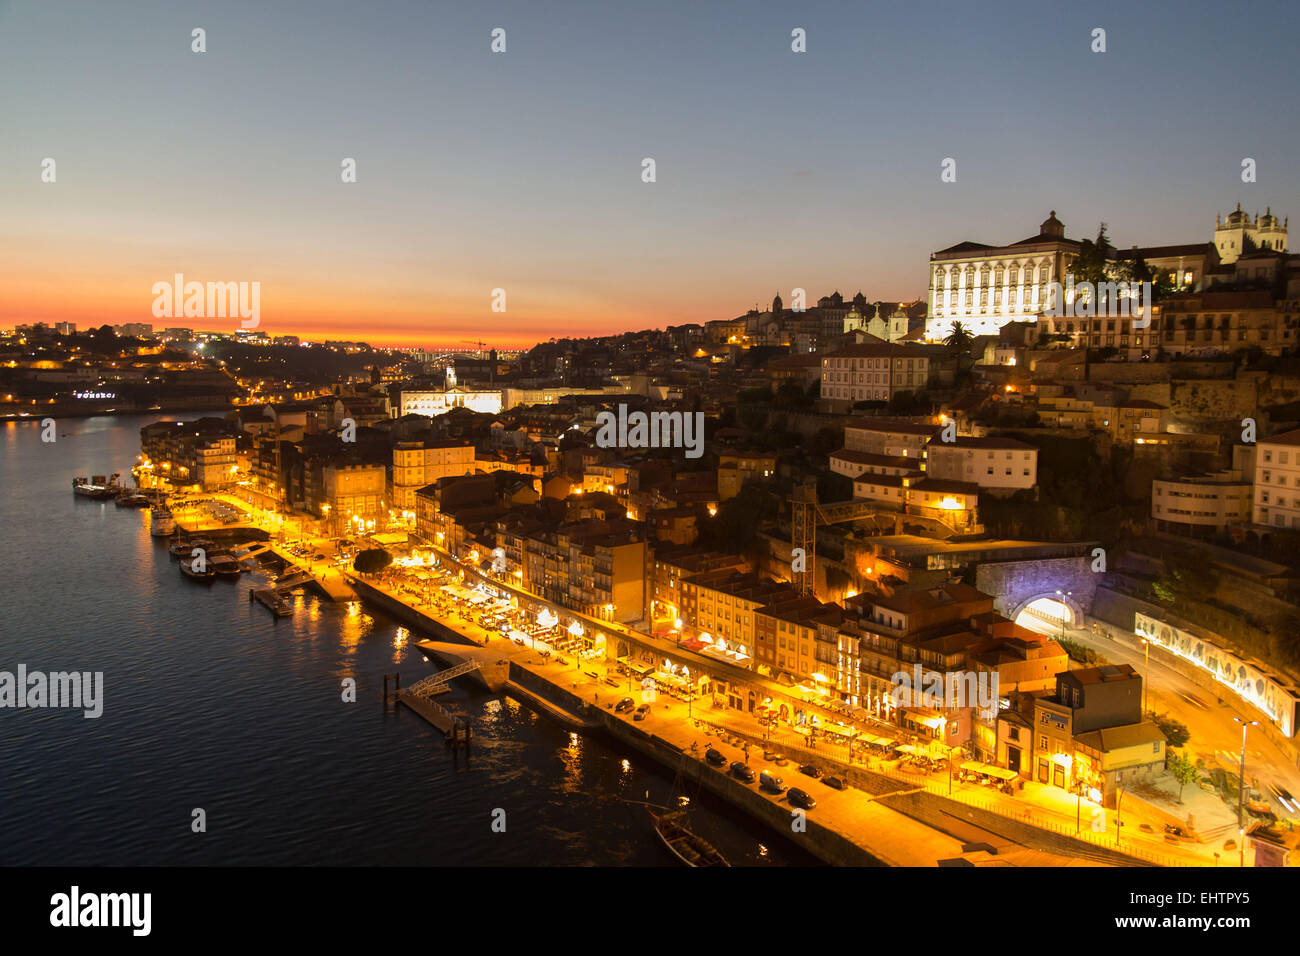 ILLUSTRATION OF OPORTO, PORTUGAL - Stock Image